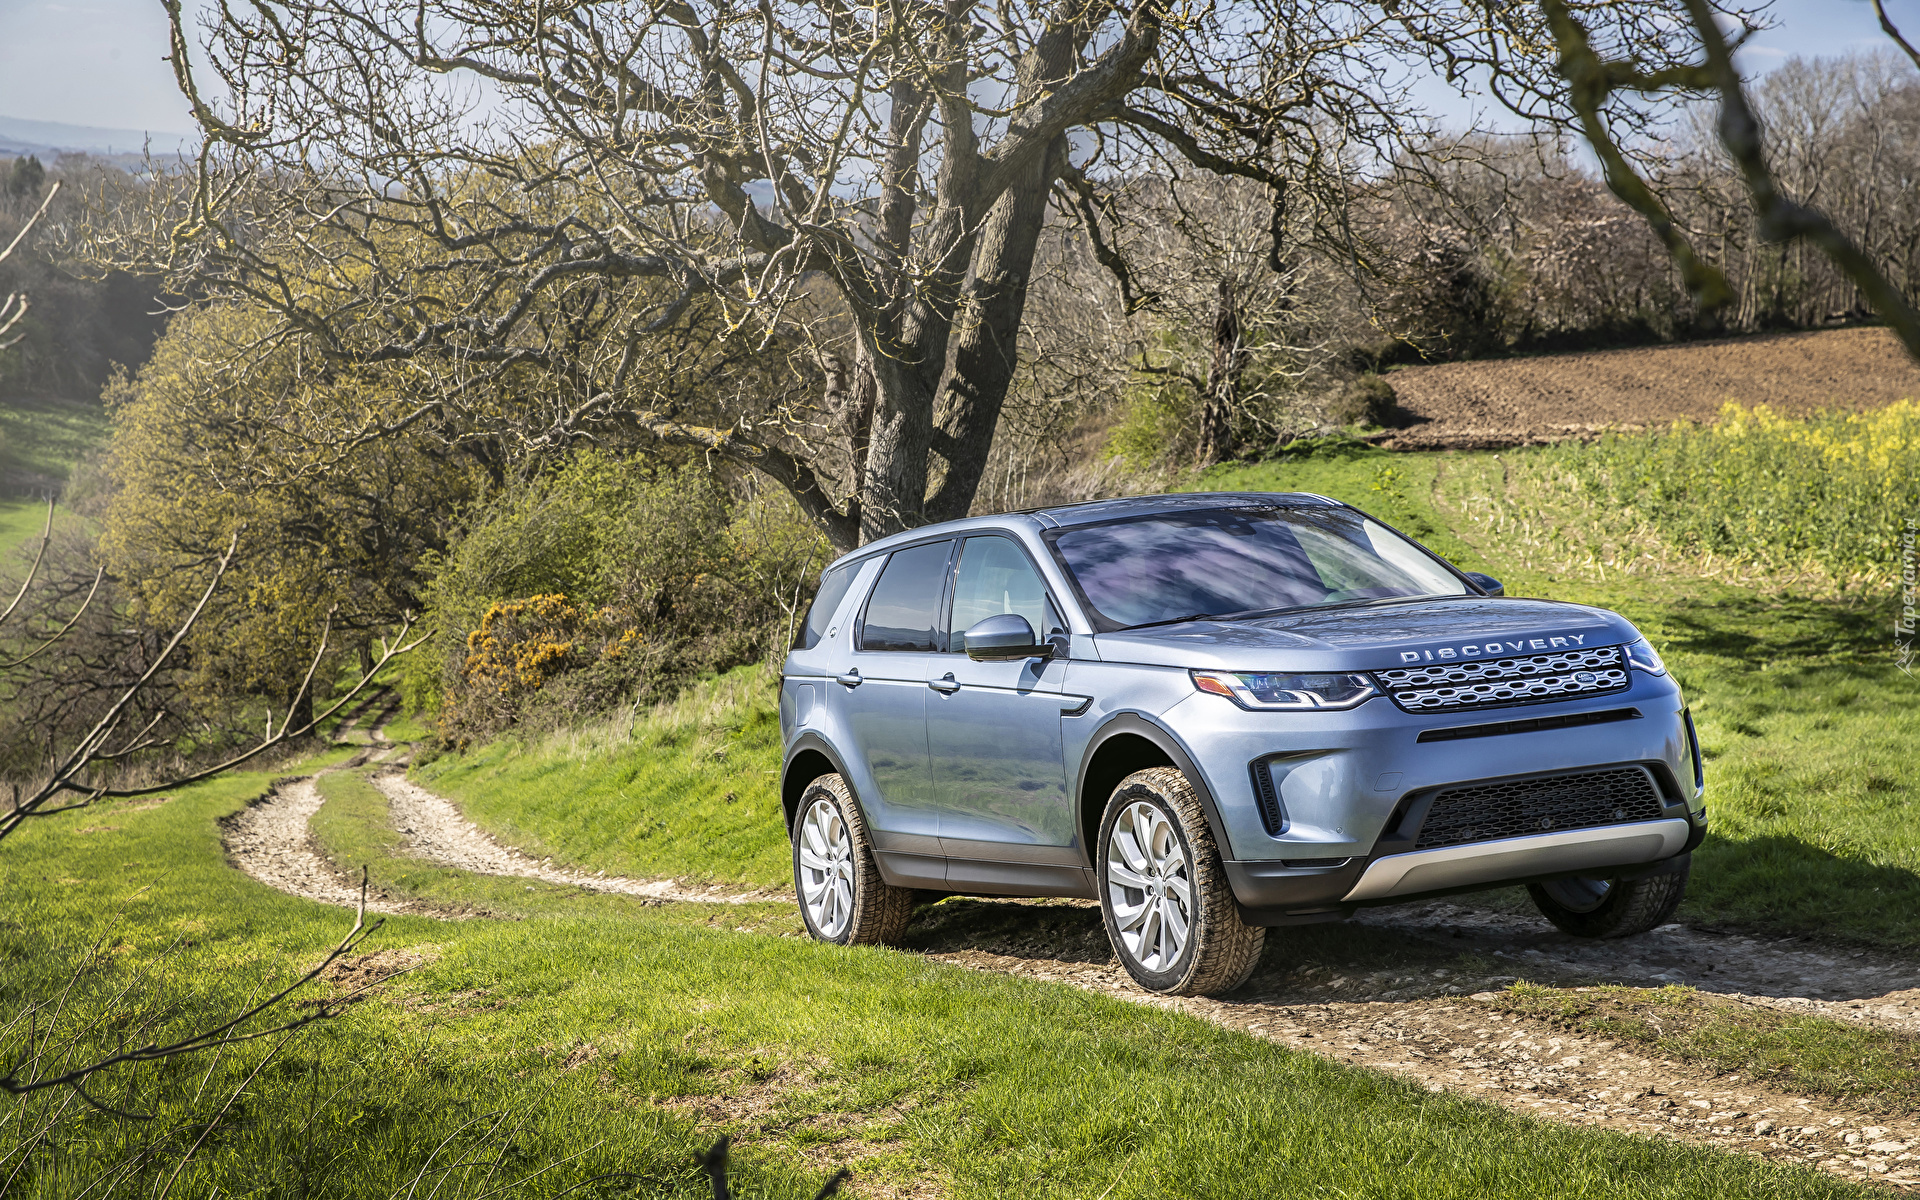 Land Rover Discovery Sport, Droga, Drzewa